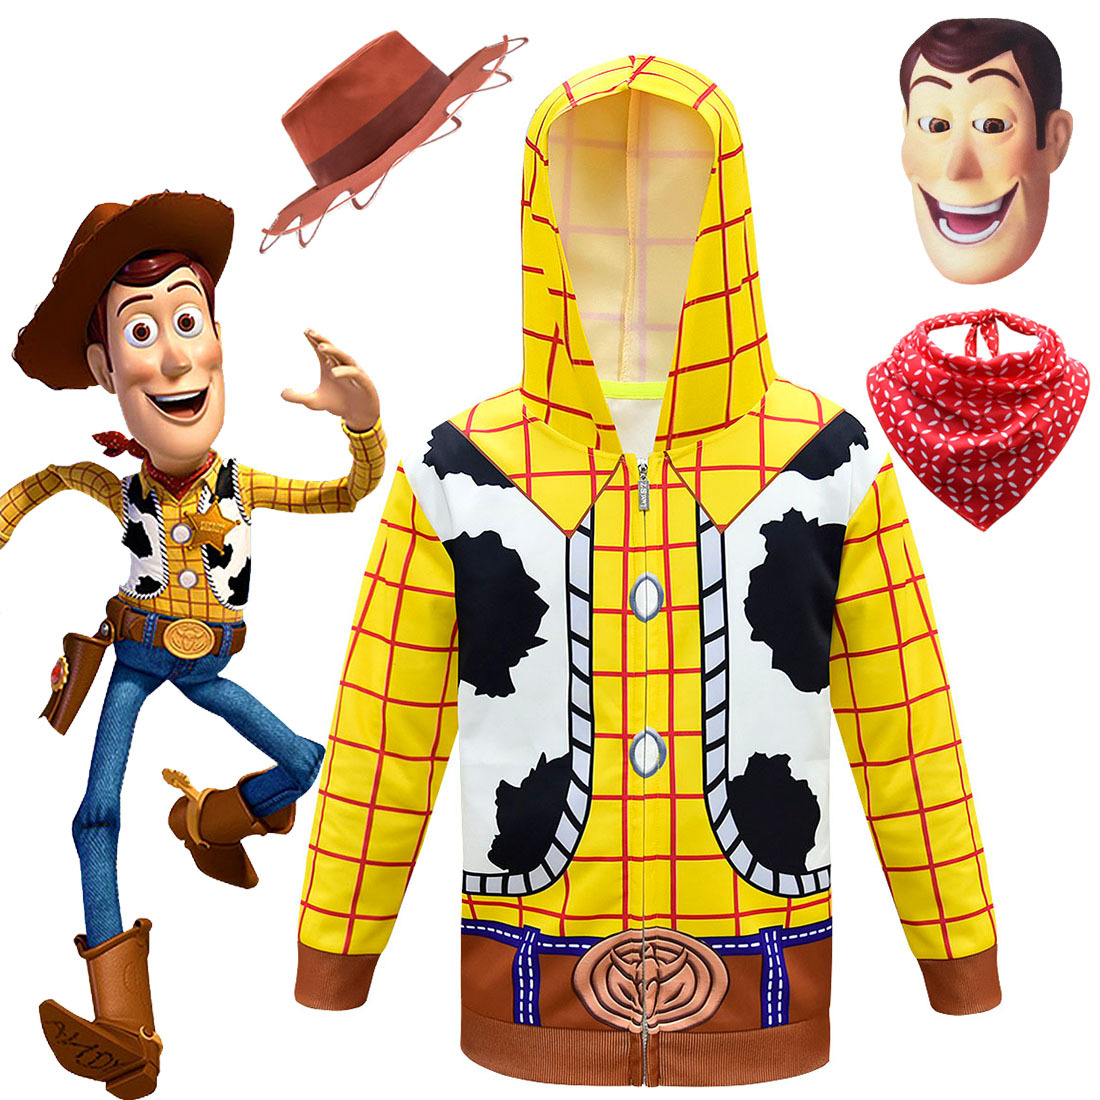 Woody Cowboy Toy Story Mascot Costume Party Character Birthday Halloween Cosplay